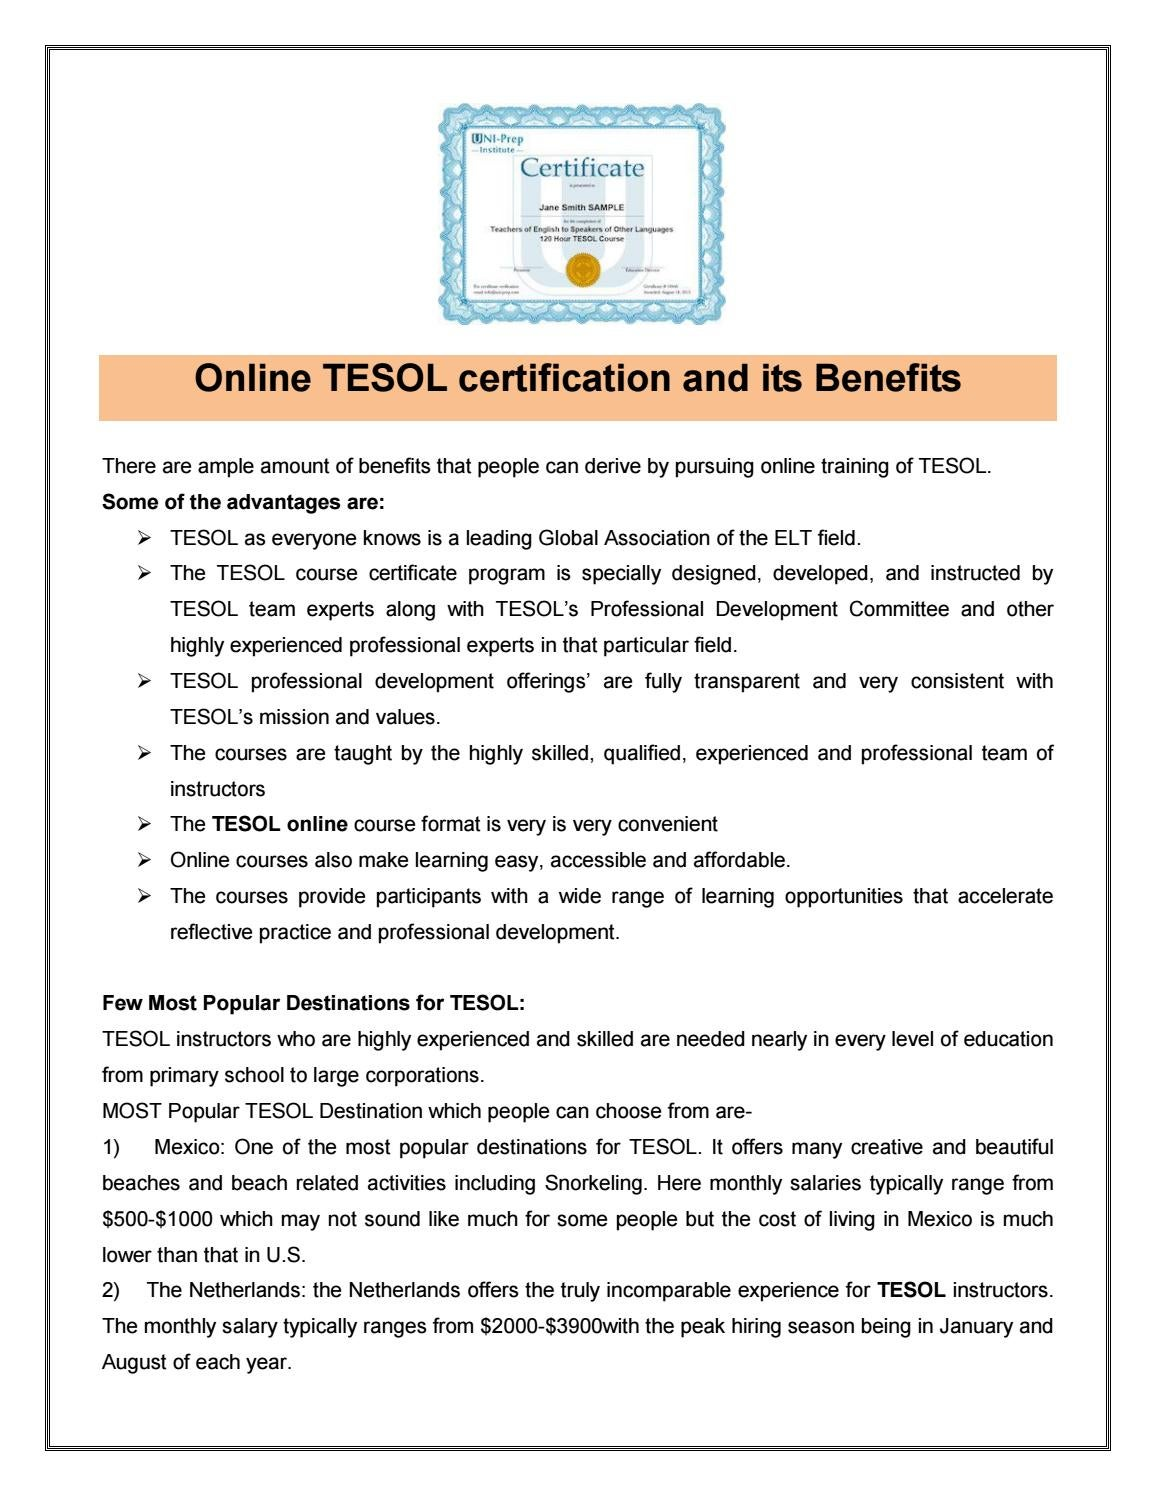 Online Tesol Certification Its Benefits By Uniprep Issuu